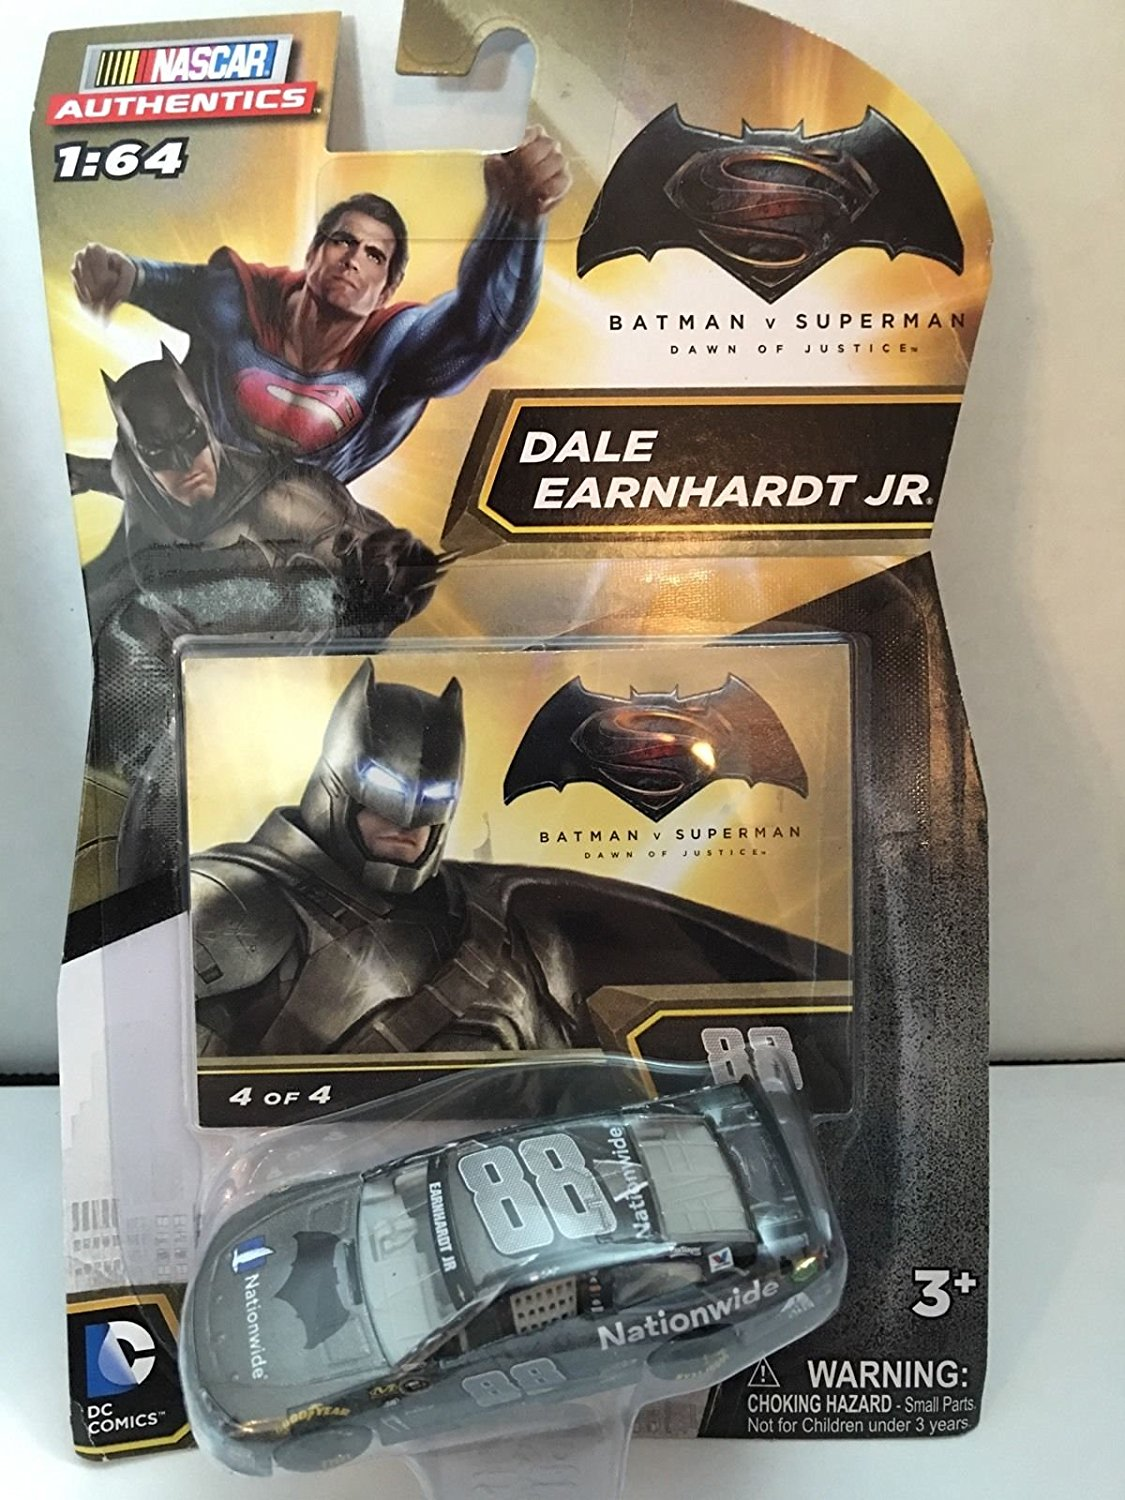 2016 Authentics 1 64 1:64 Batman vs Superman: Dawn of Justice Dale Earnhardt Jr #88 Batman... by